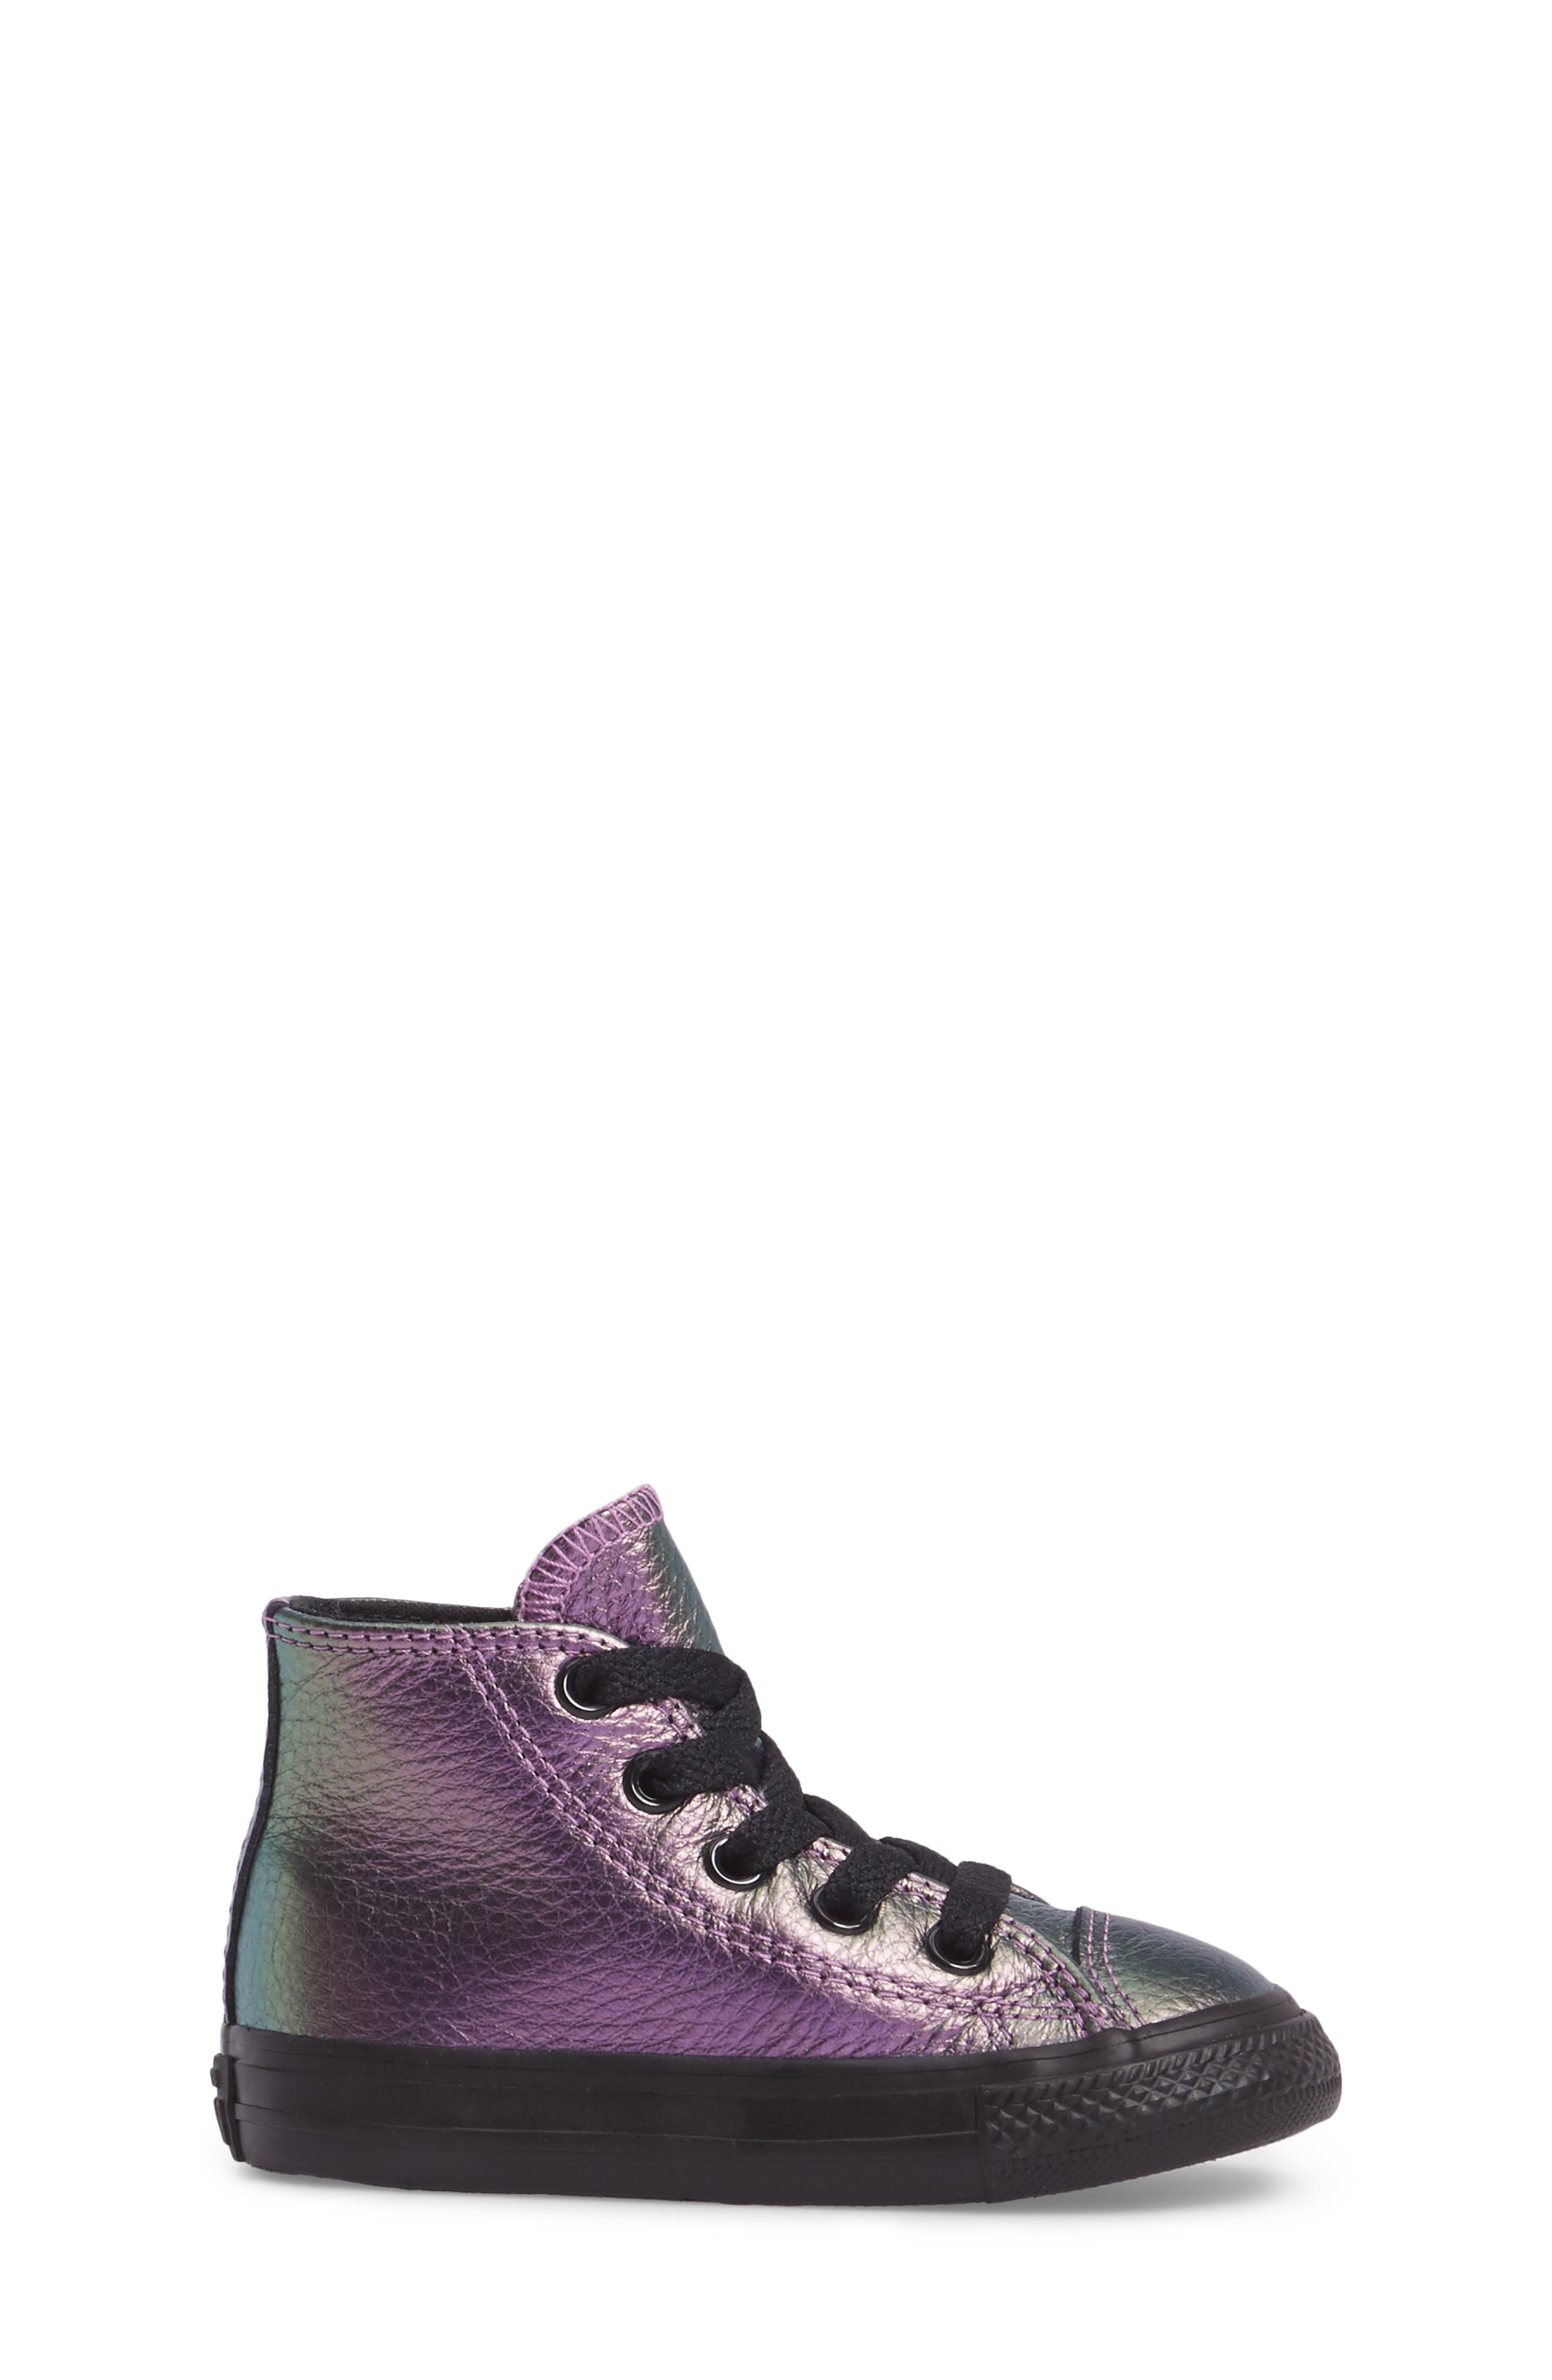 Chuck Taylor<sup>®</sup> All Star<sup>®</sup> Iridescent Leather High Top Sneaker,                             Alternate thumbnail 6, color,